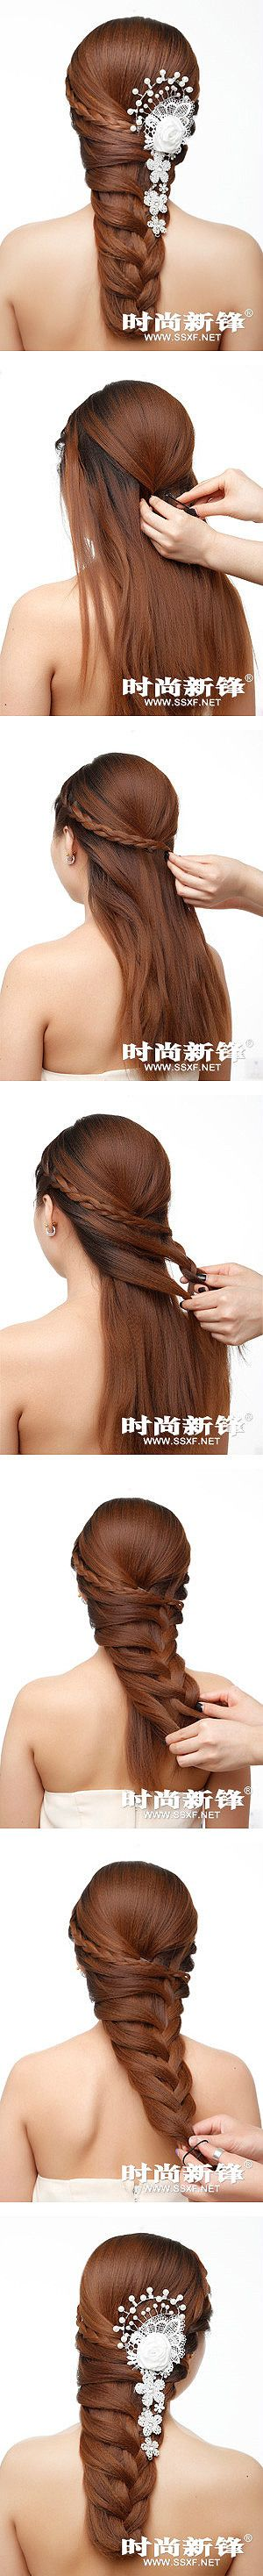 DIY Half  Braided Crown Hairstyle Do It Yourself Fashion Tips | DIY Fashion Projects.